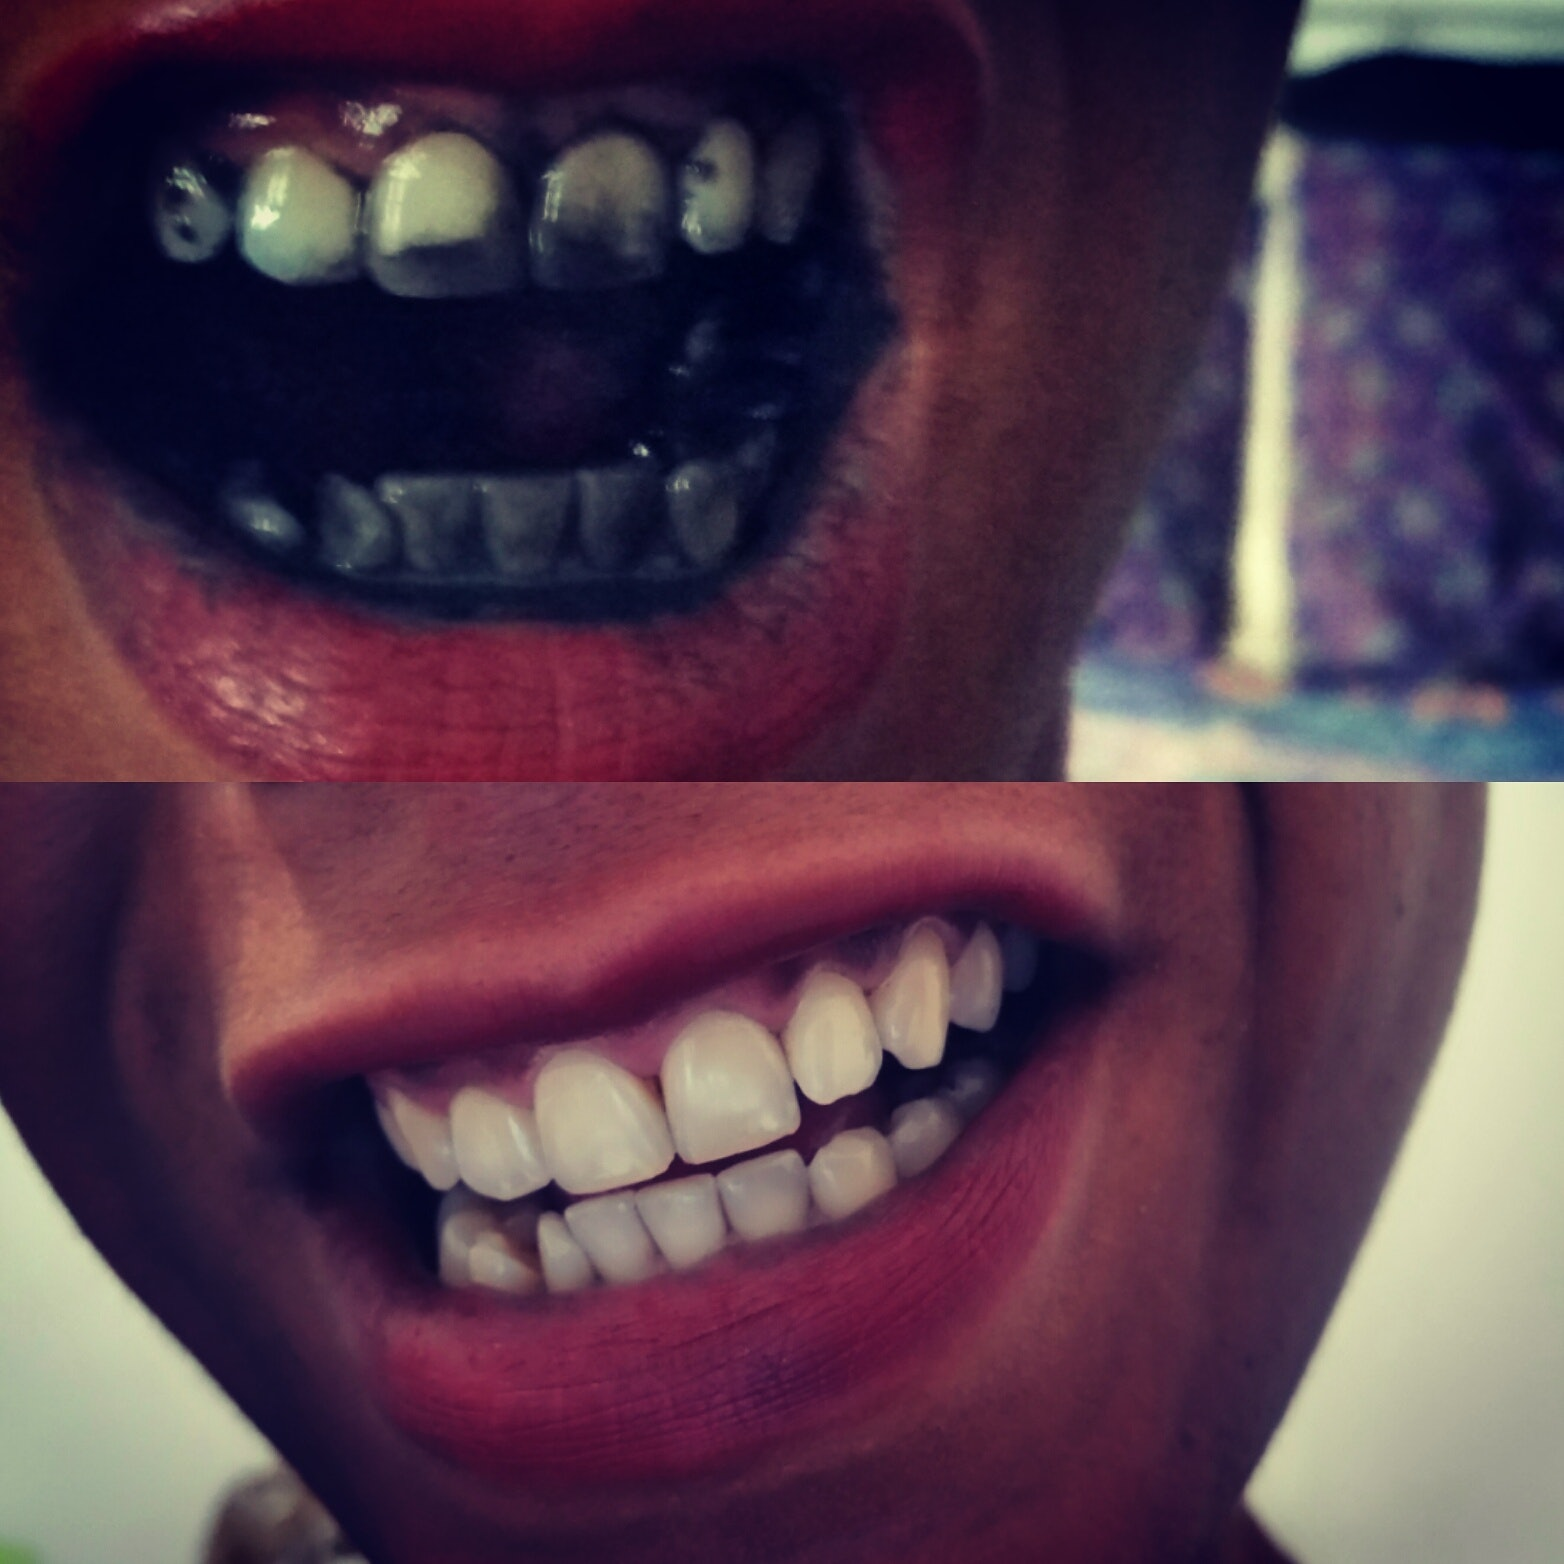 I Tested 6 Home Remedies To Whiten Teeth This One Worked The Best